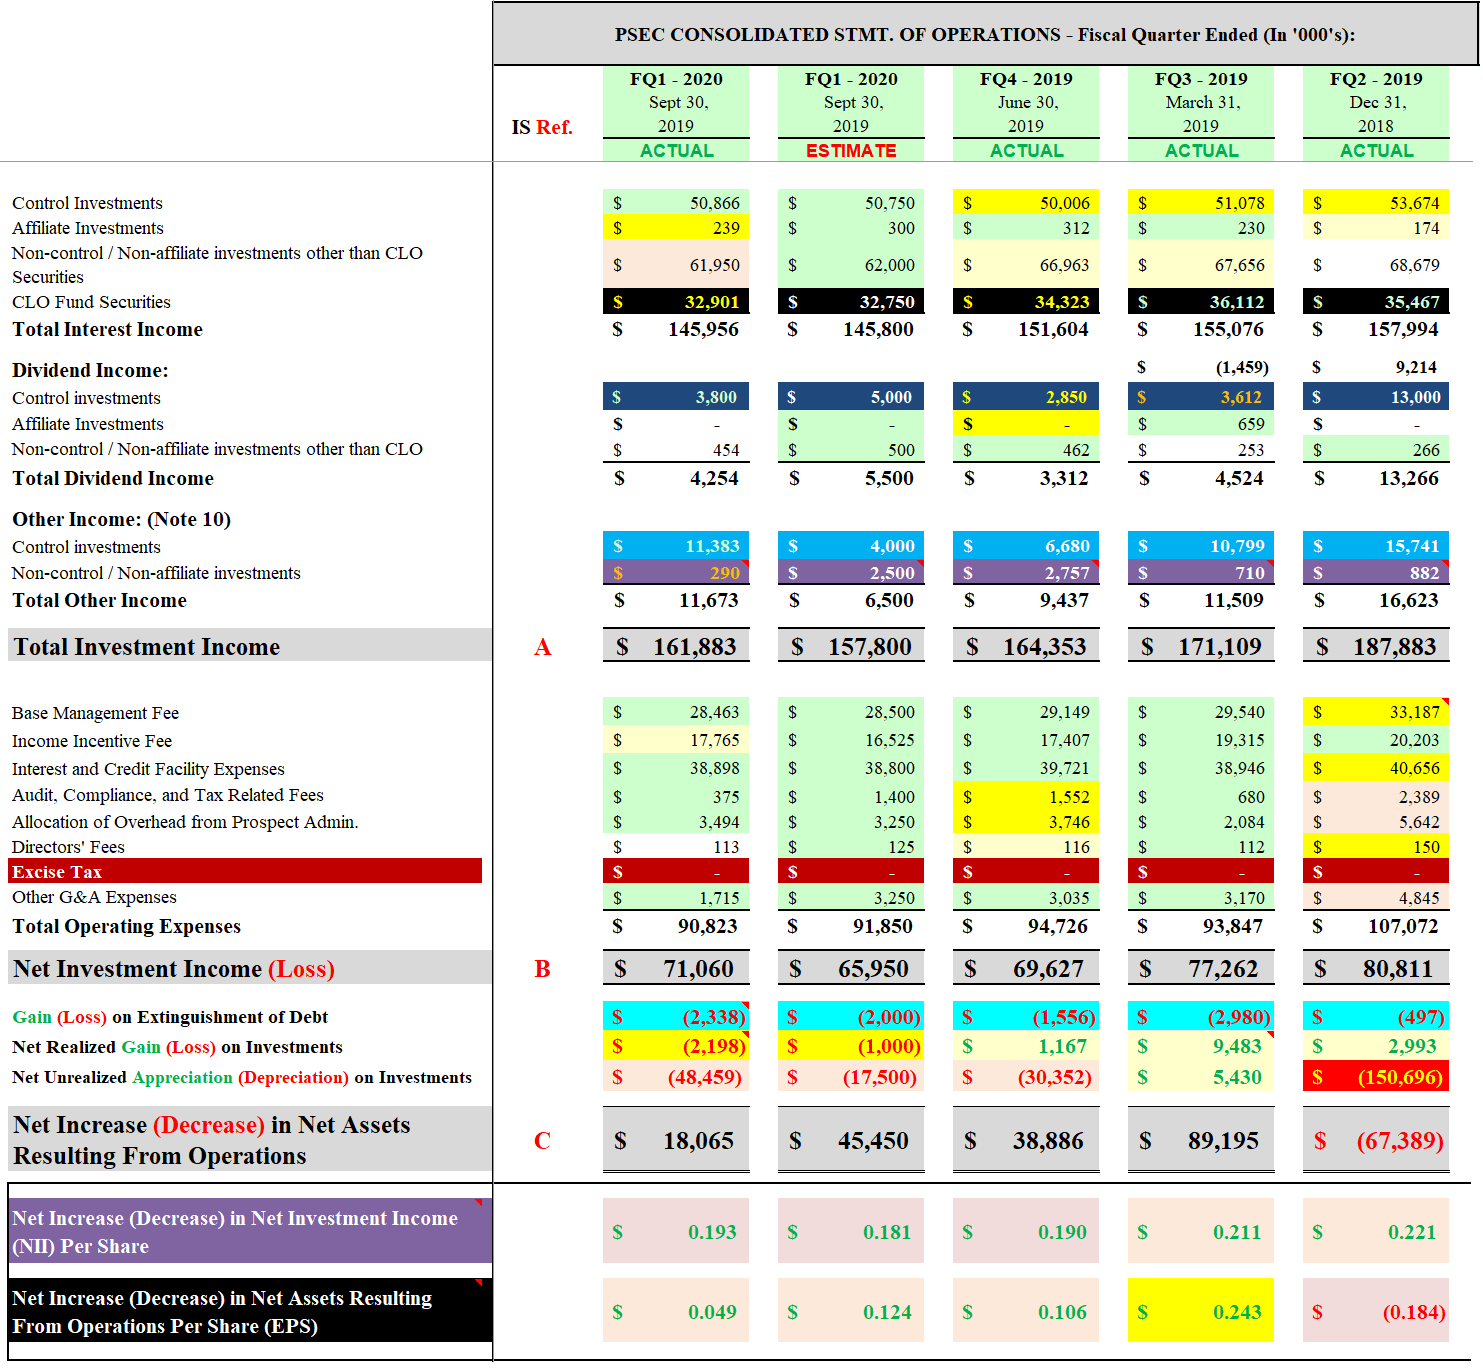 Detailed Analysis Of Prospect Capital's Fiscal Q1 2020 (Includes Current Recommendation And Updated Positive And Negative Catalysts/Factors)